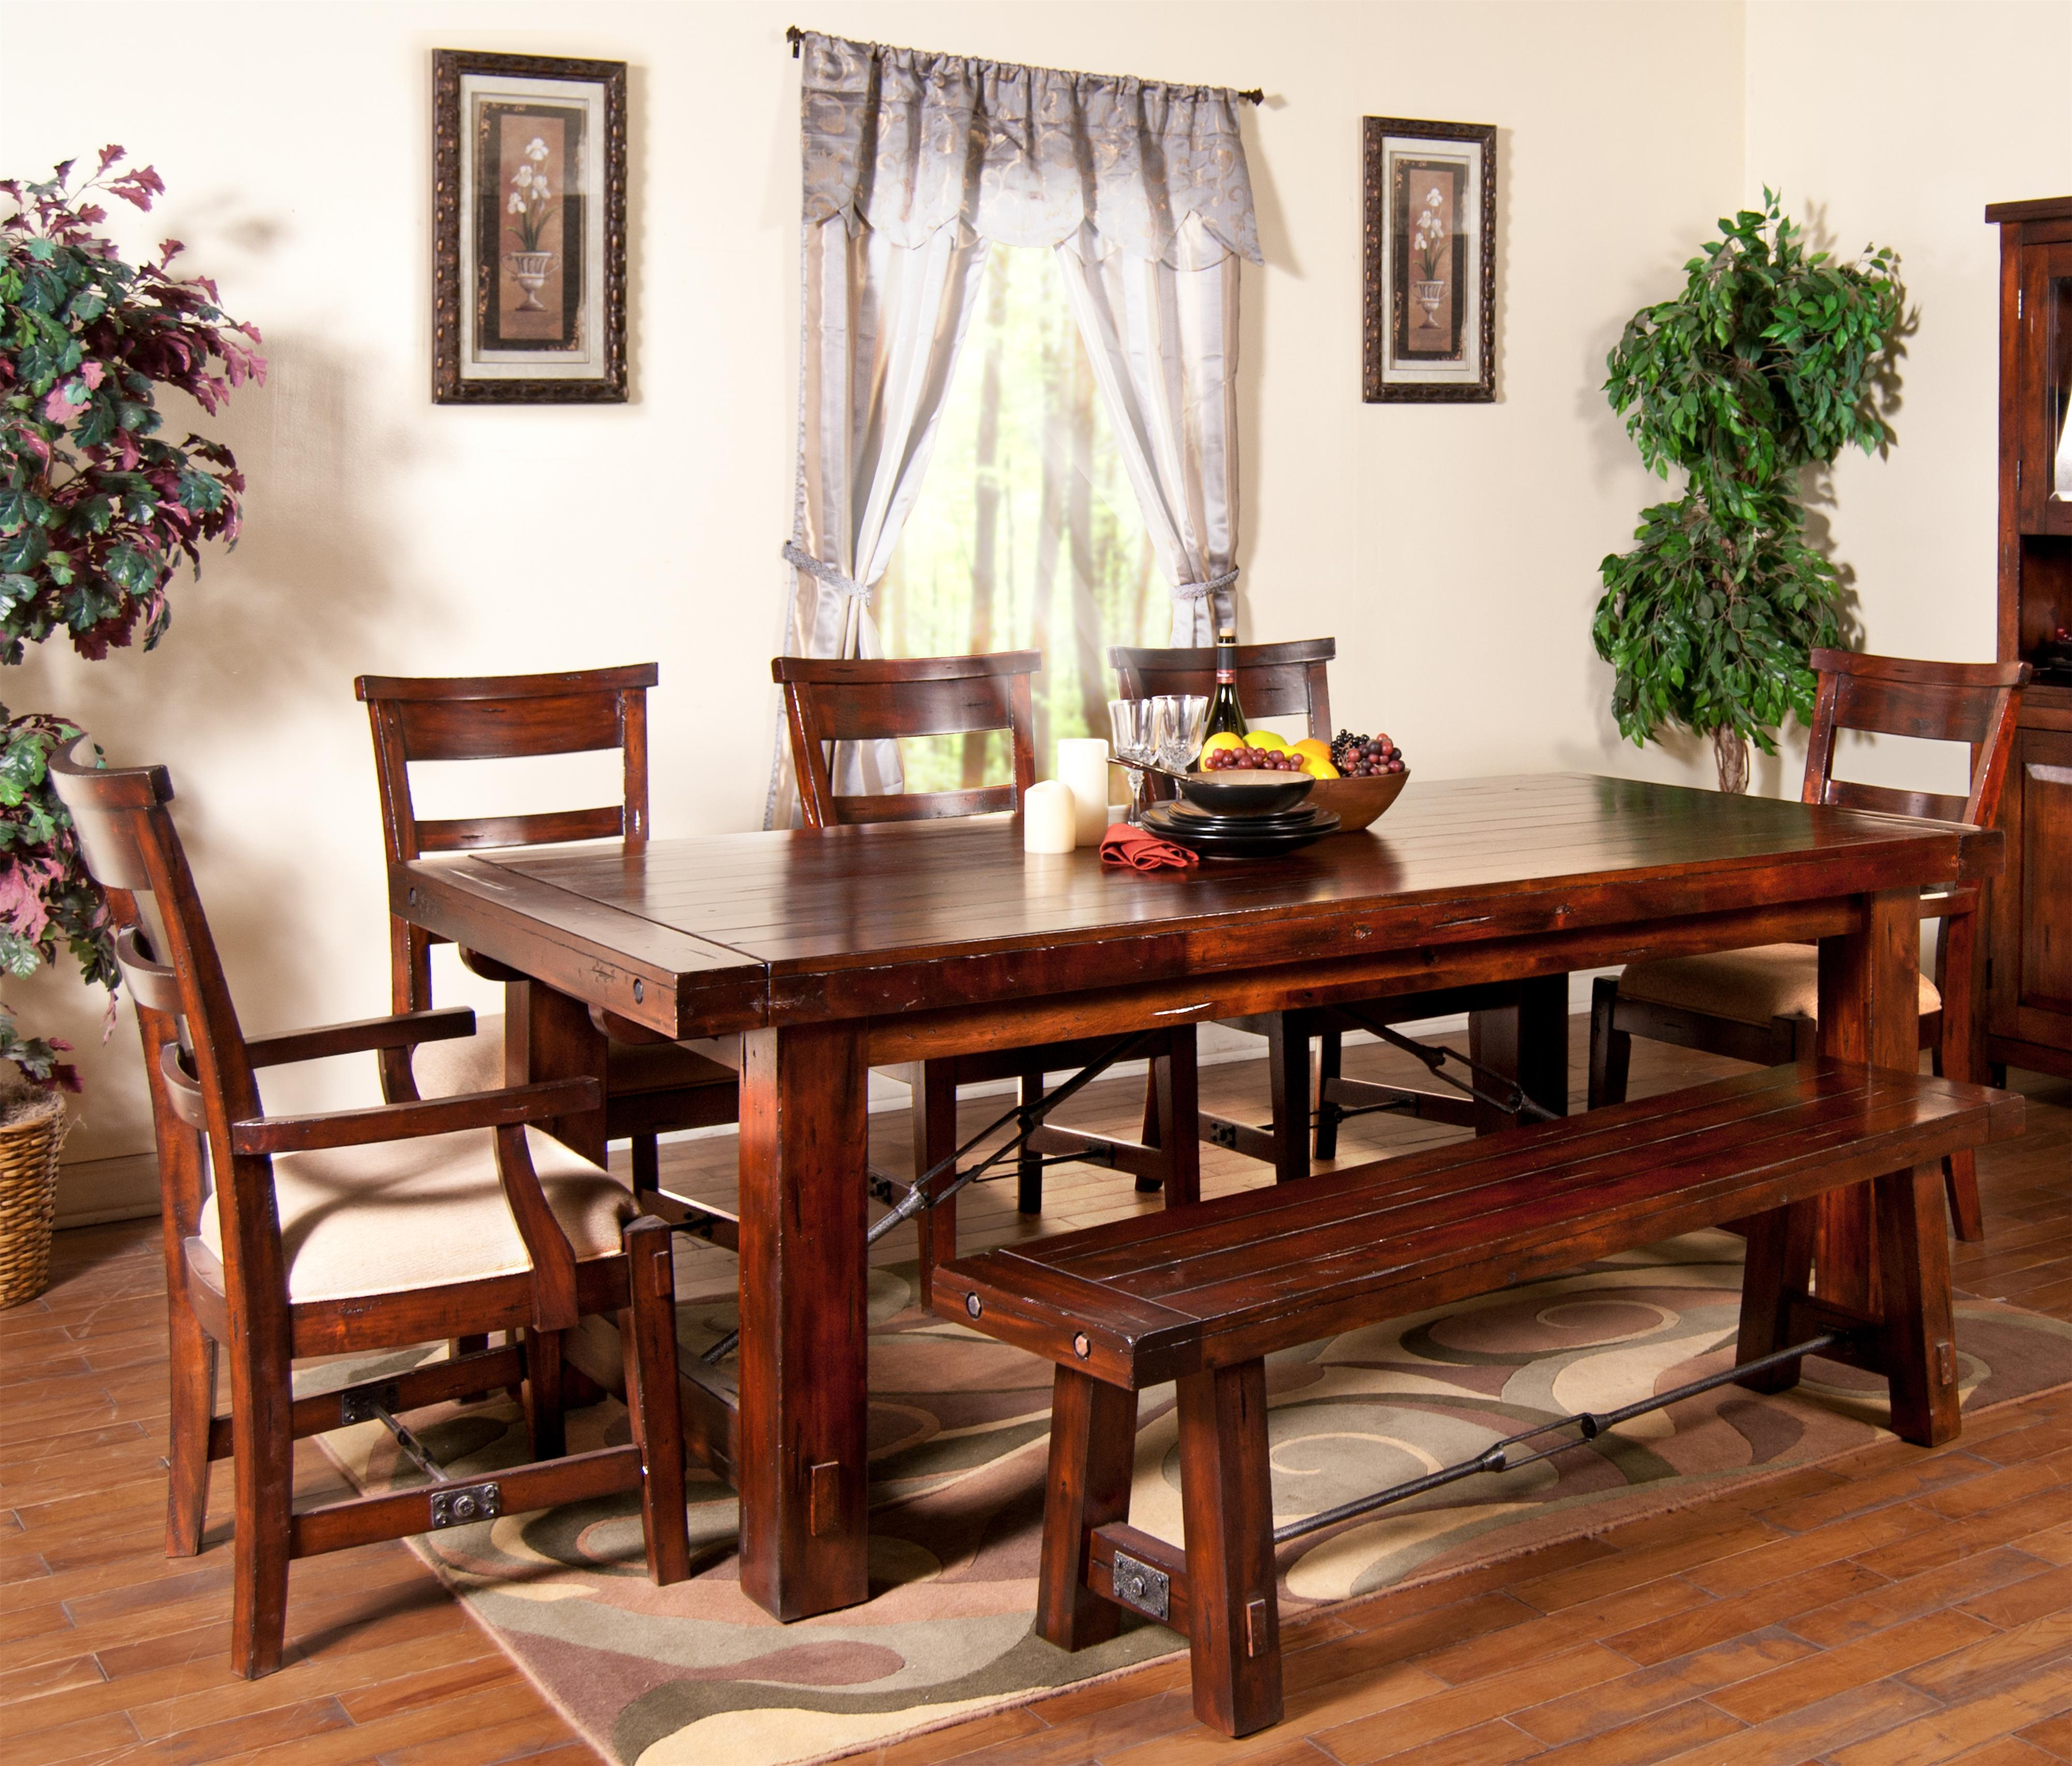 kitchen tables full size of chair:kitchen table sets rustic kitchen table sets ashley  furniture TZVJLXX